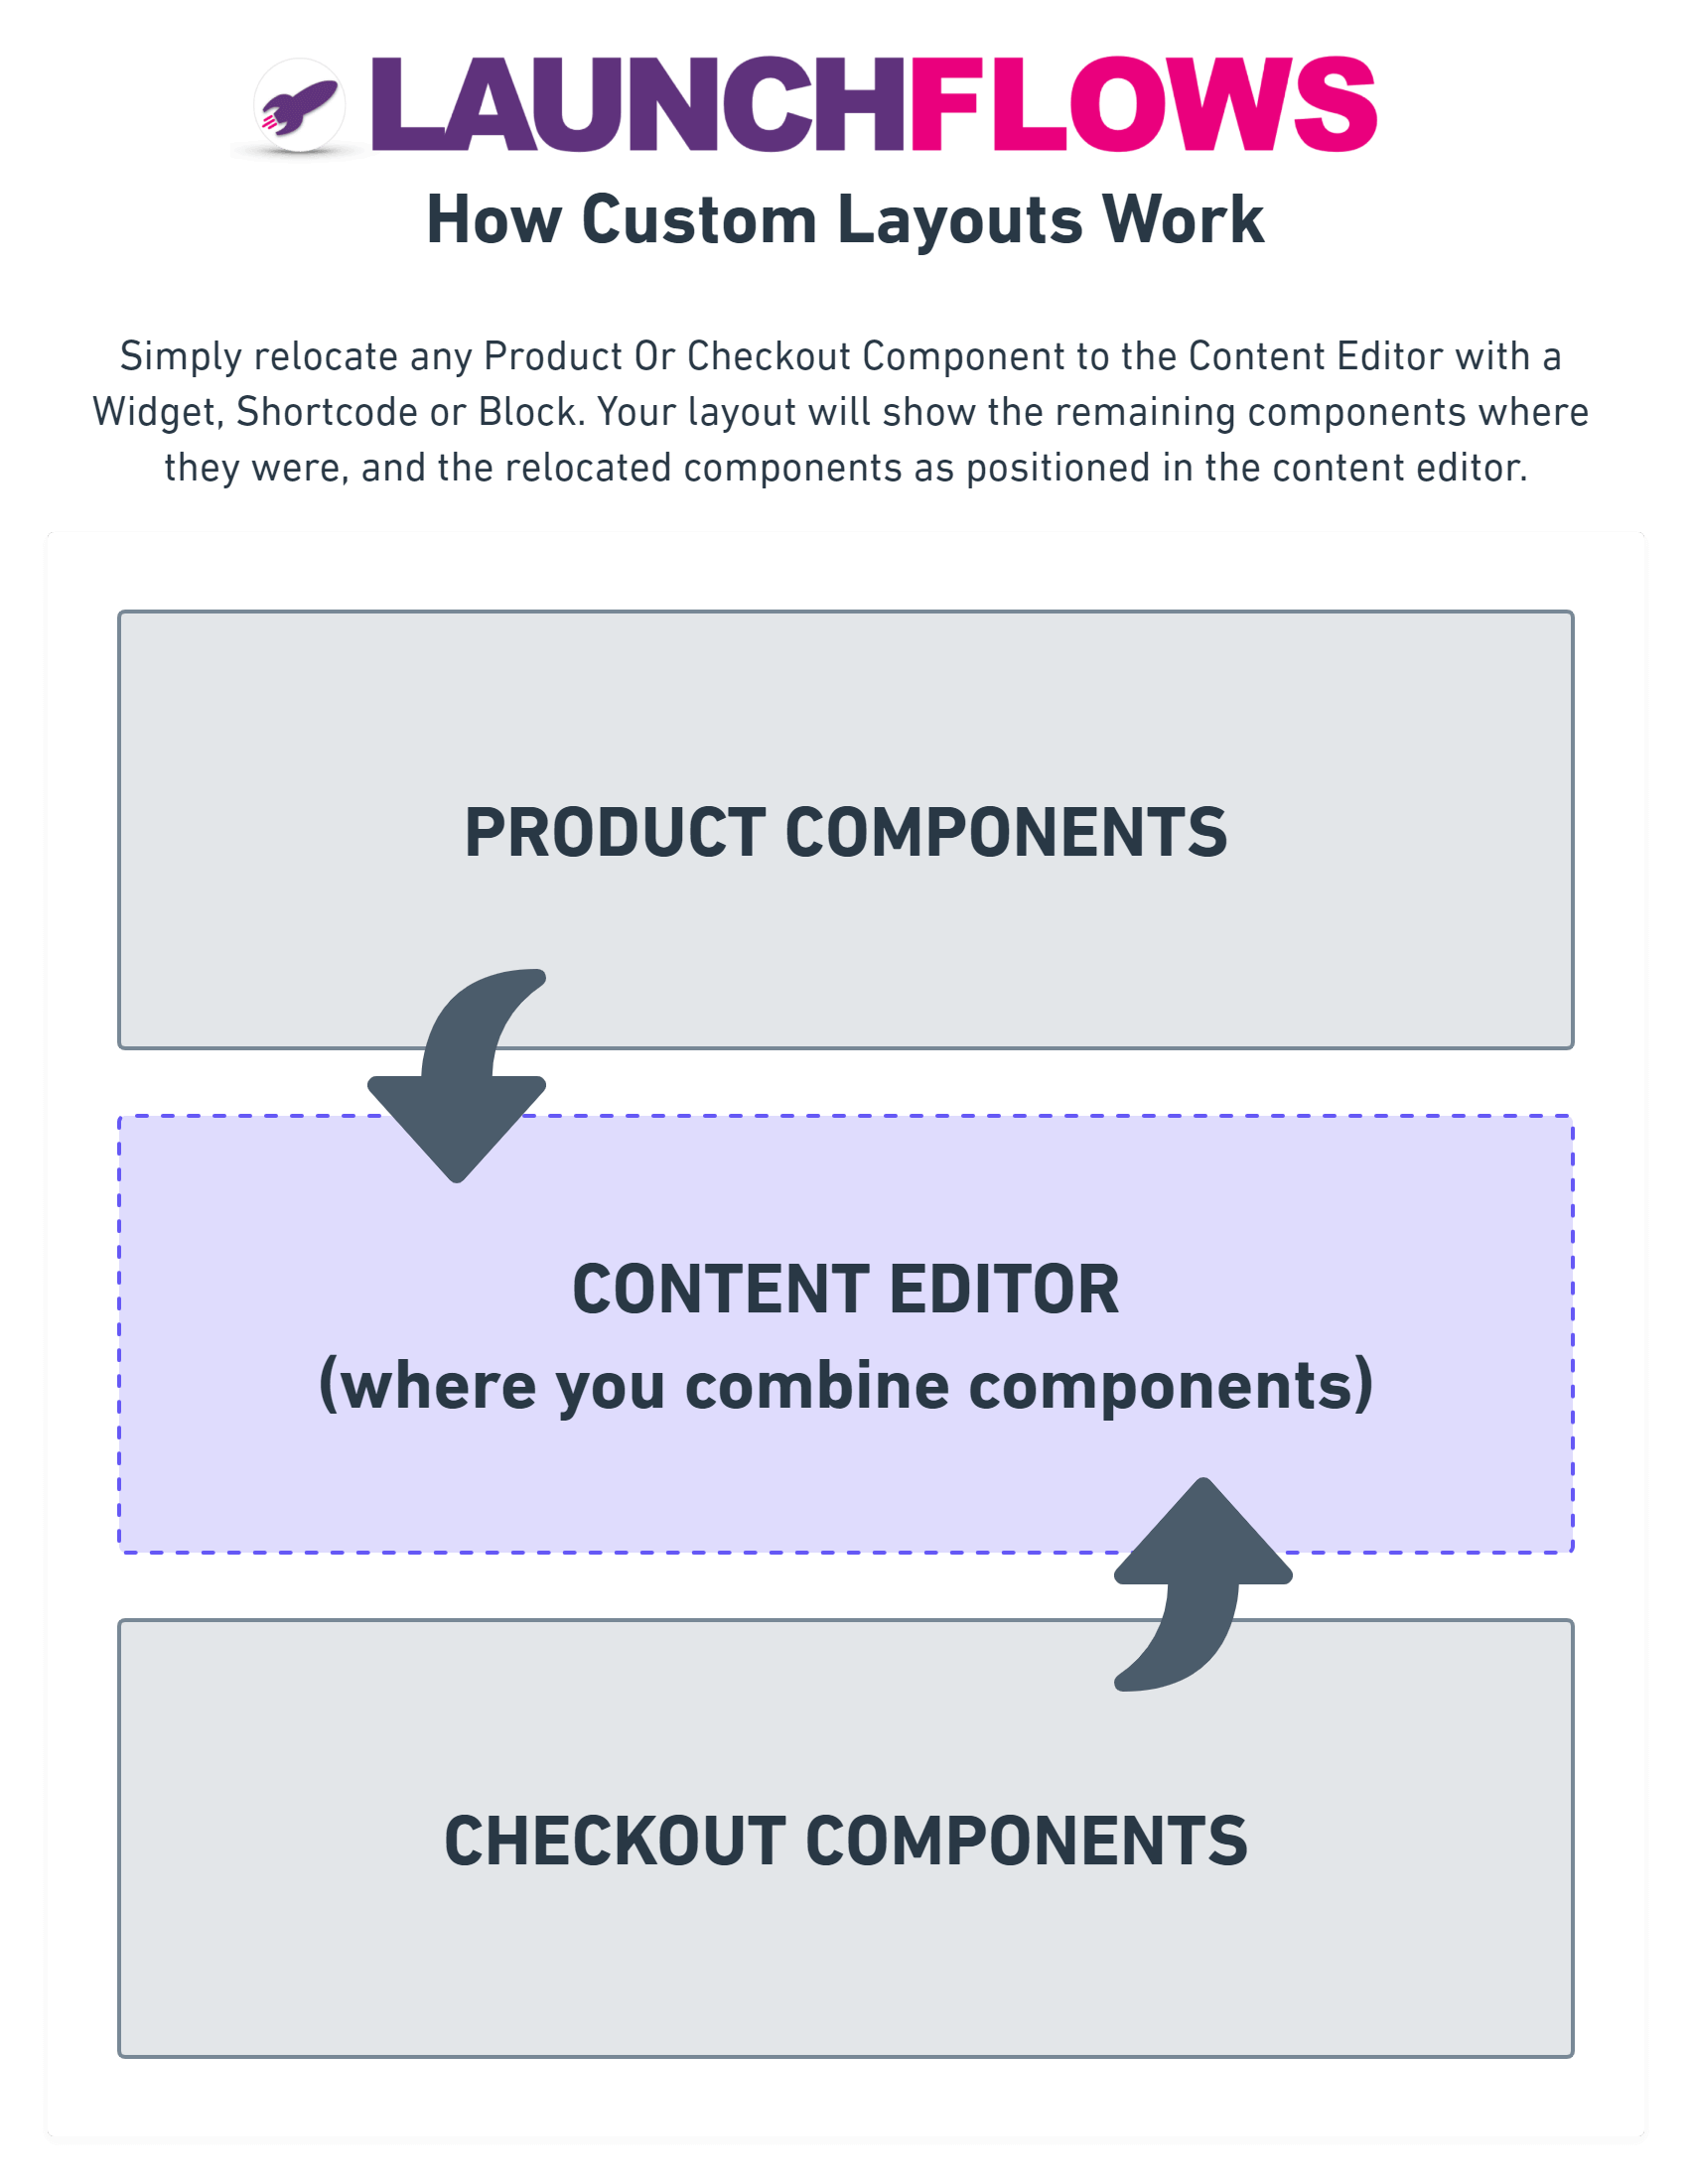 How LaunchFlows Layouts Work